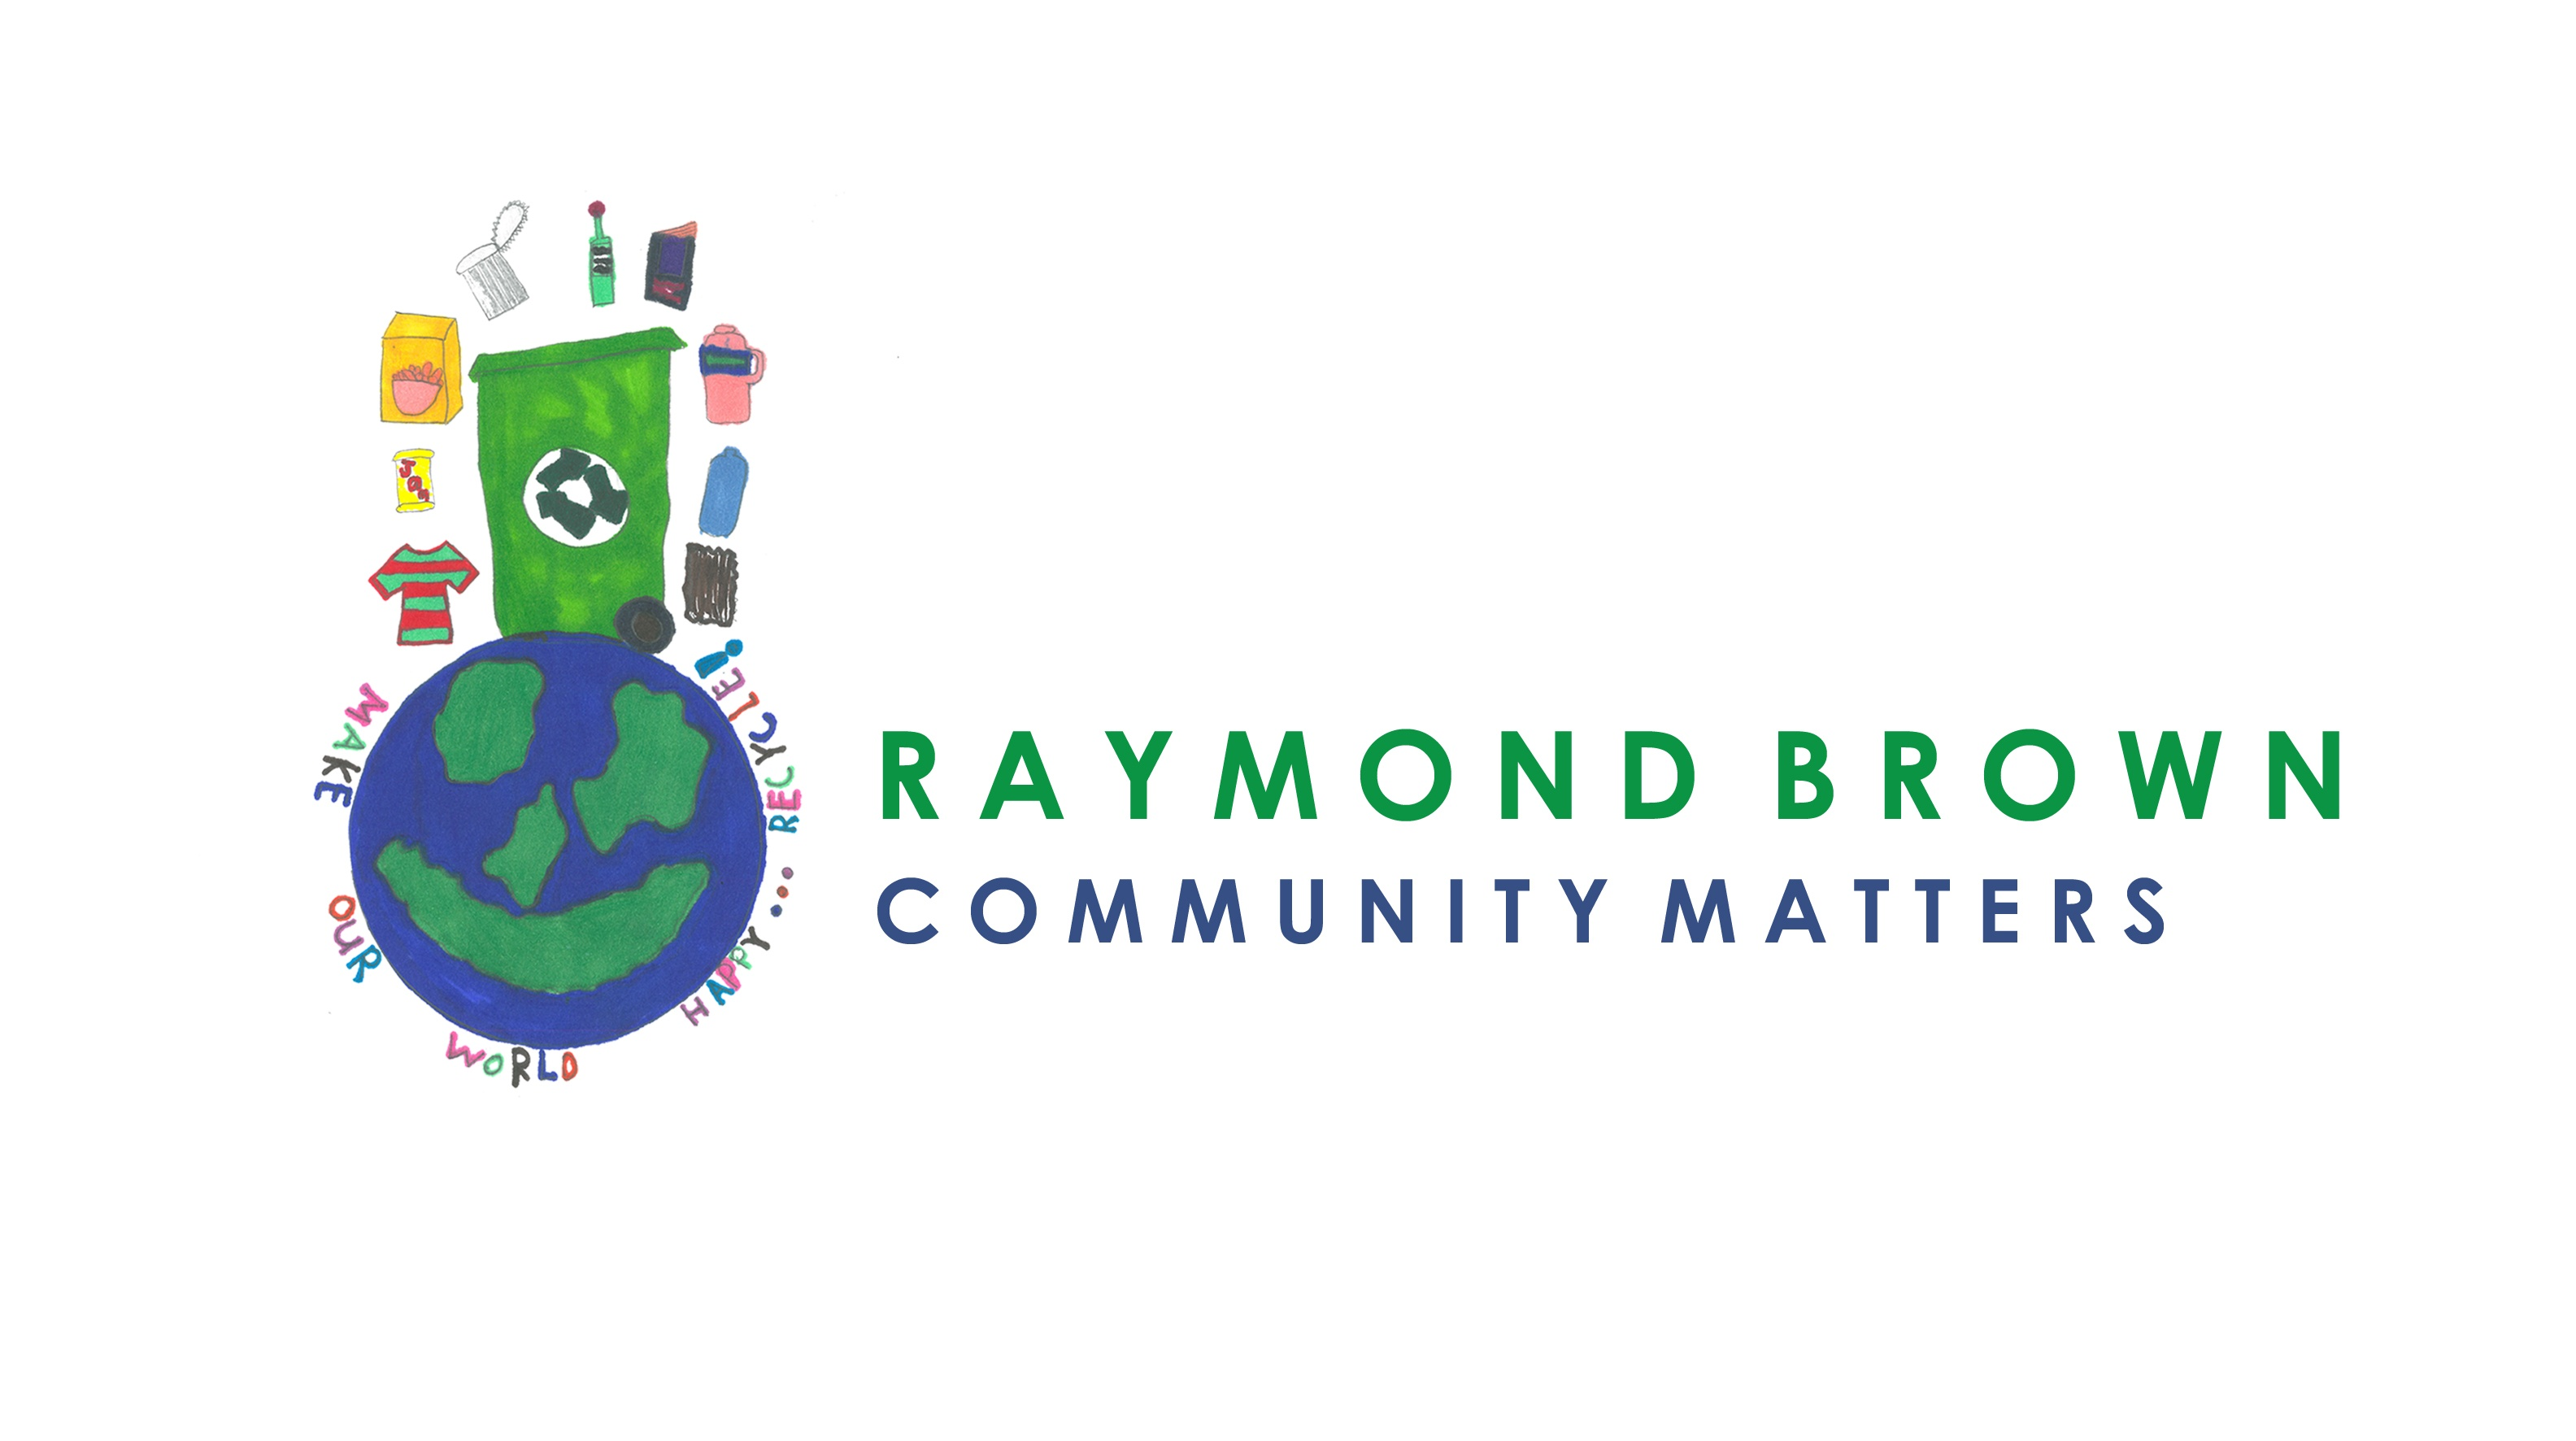 Raymond Brown Community Matters.jpg